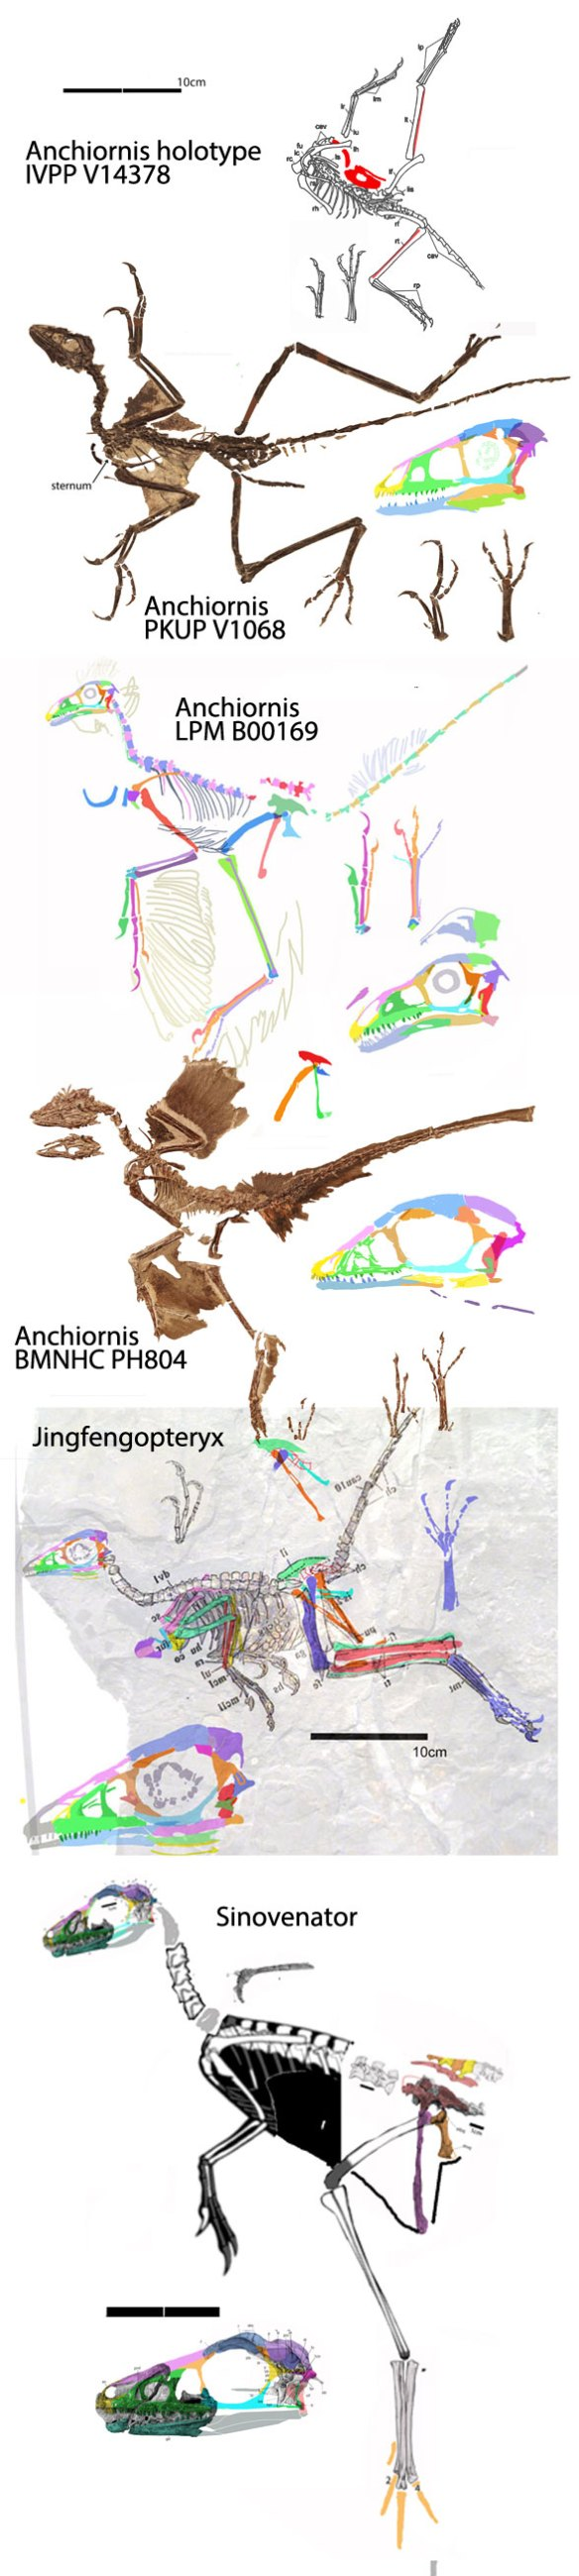 Figure 1. Four specimens attributed to Anchiornis. Two of these nest apart from two others (see figure 2).